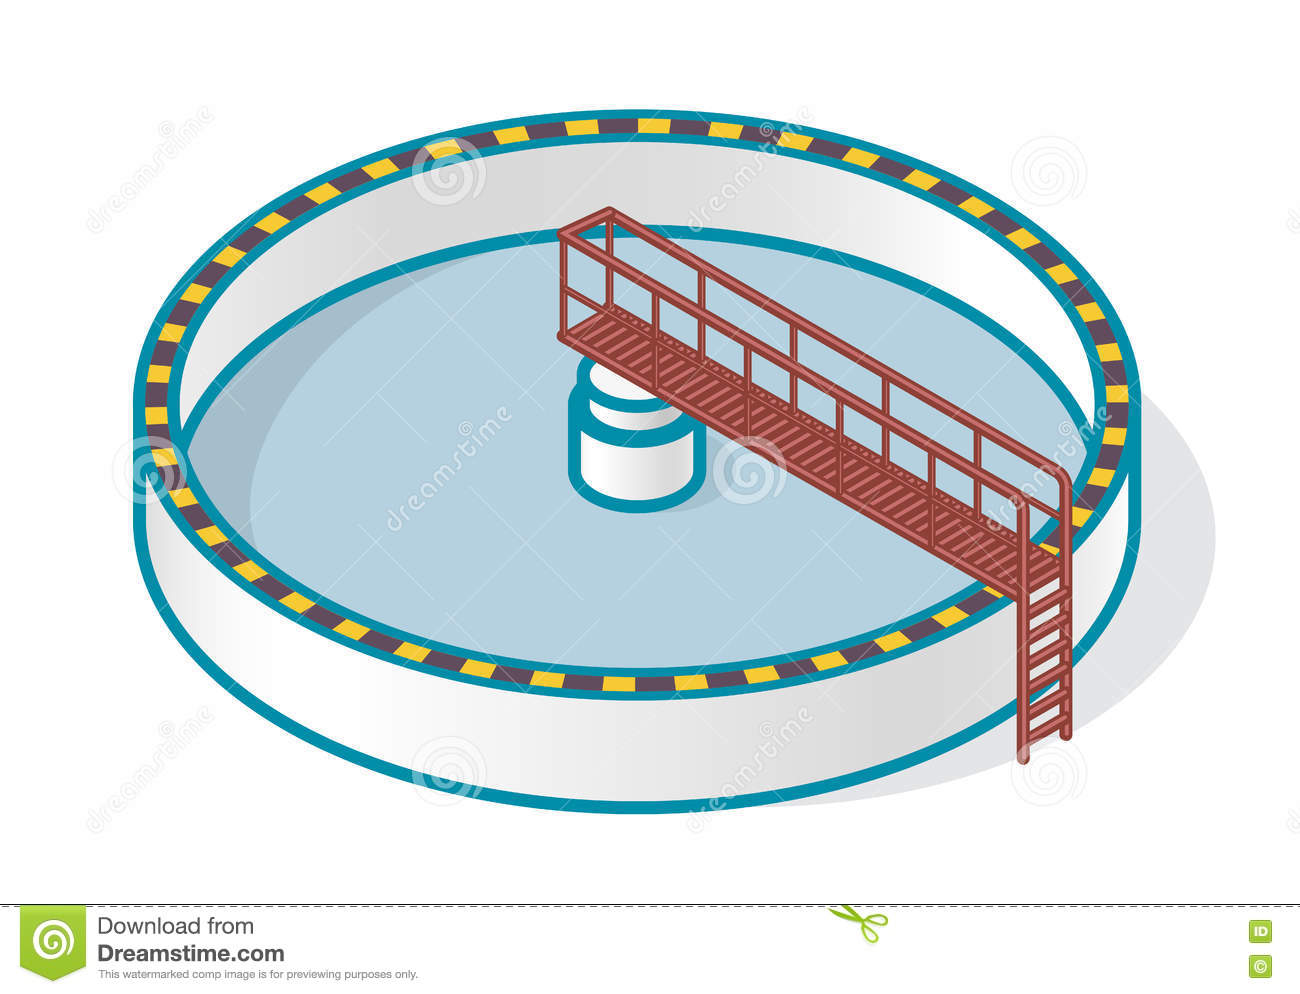 Wastewater Treatment Plant In Stylized Outline Vector Symbol.